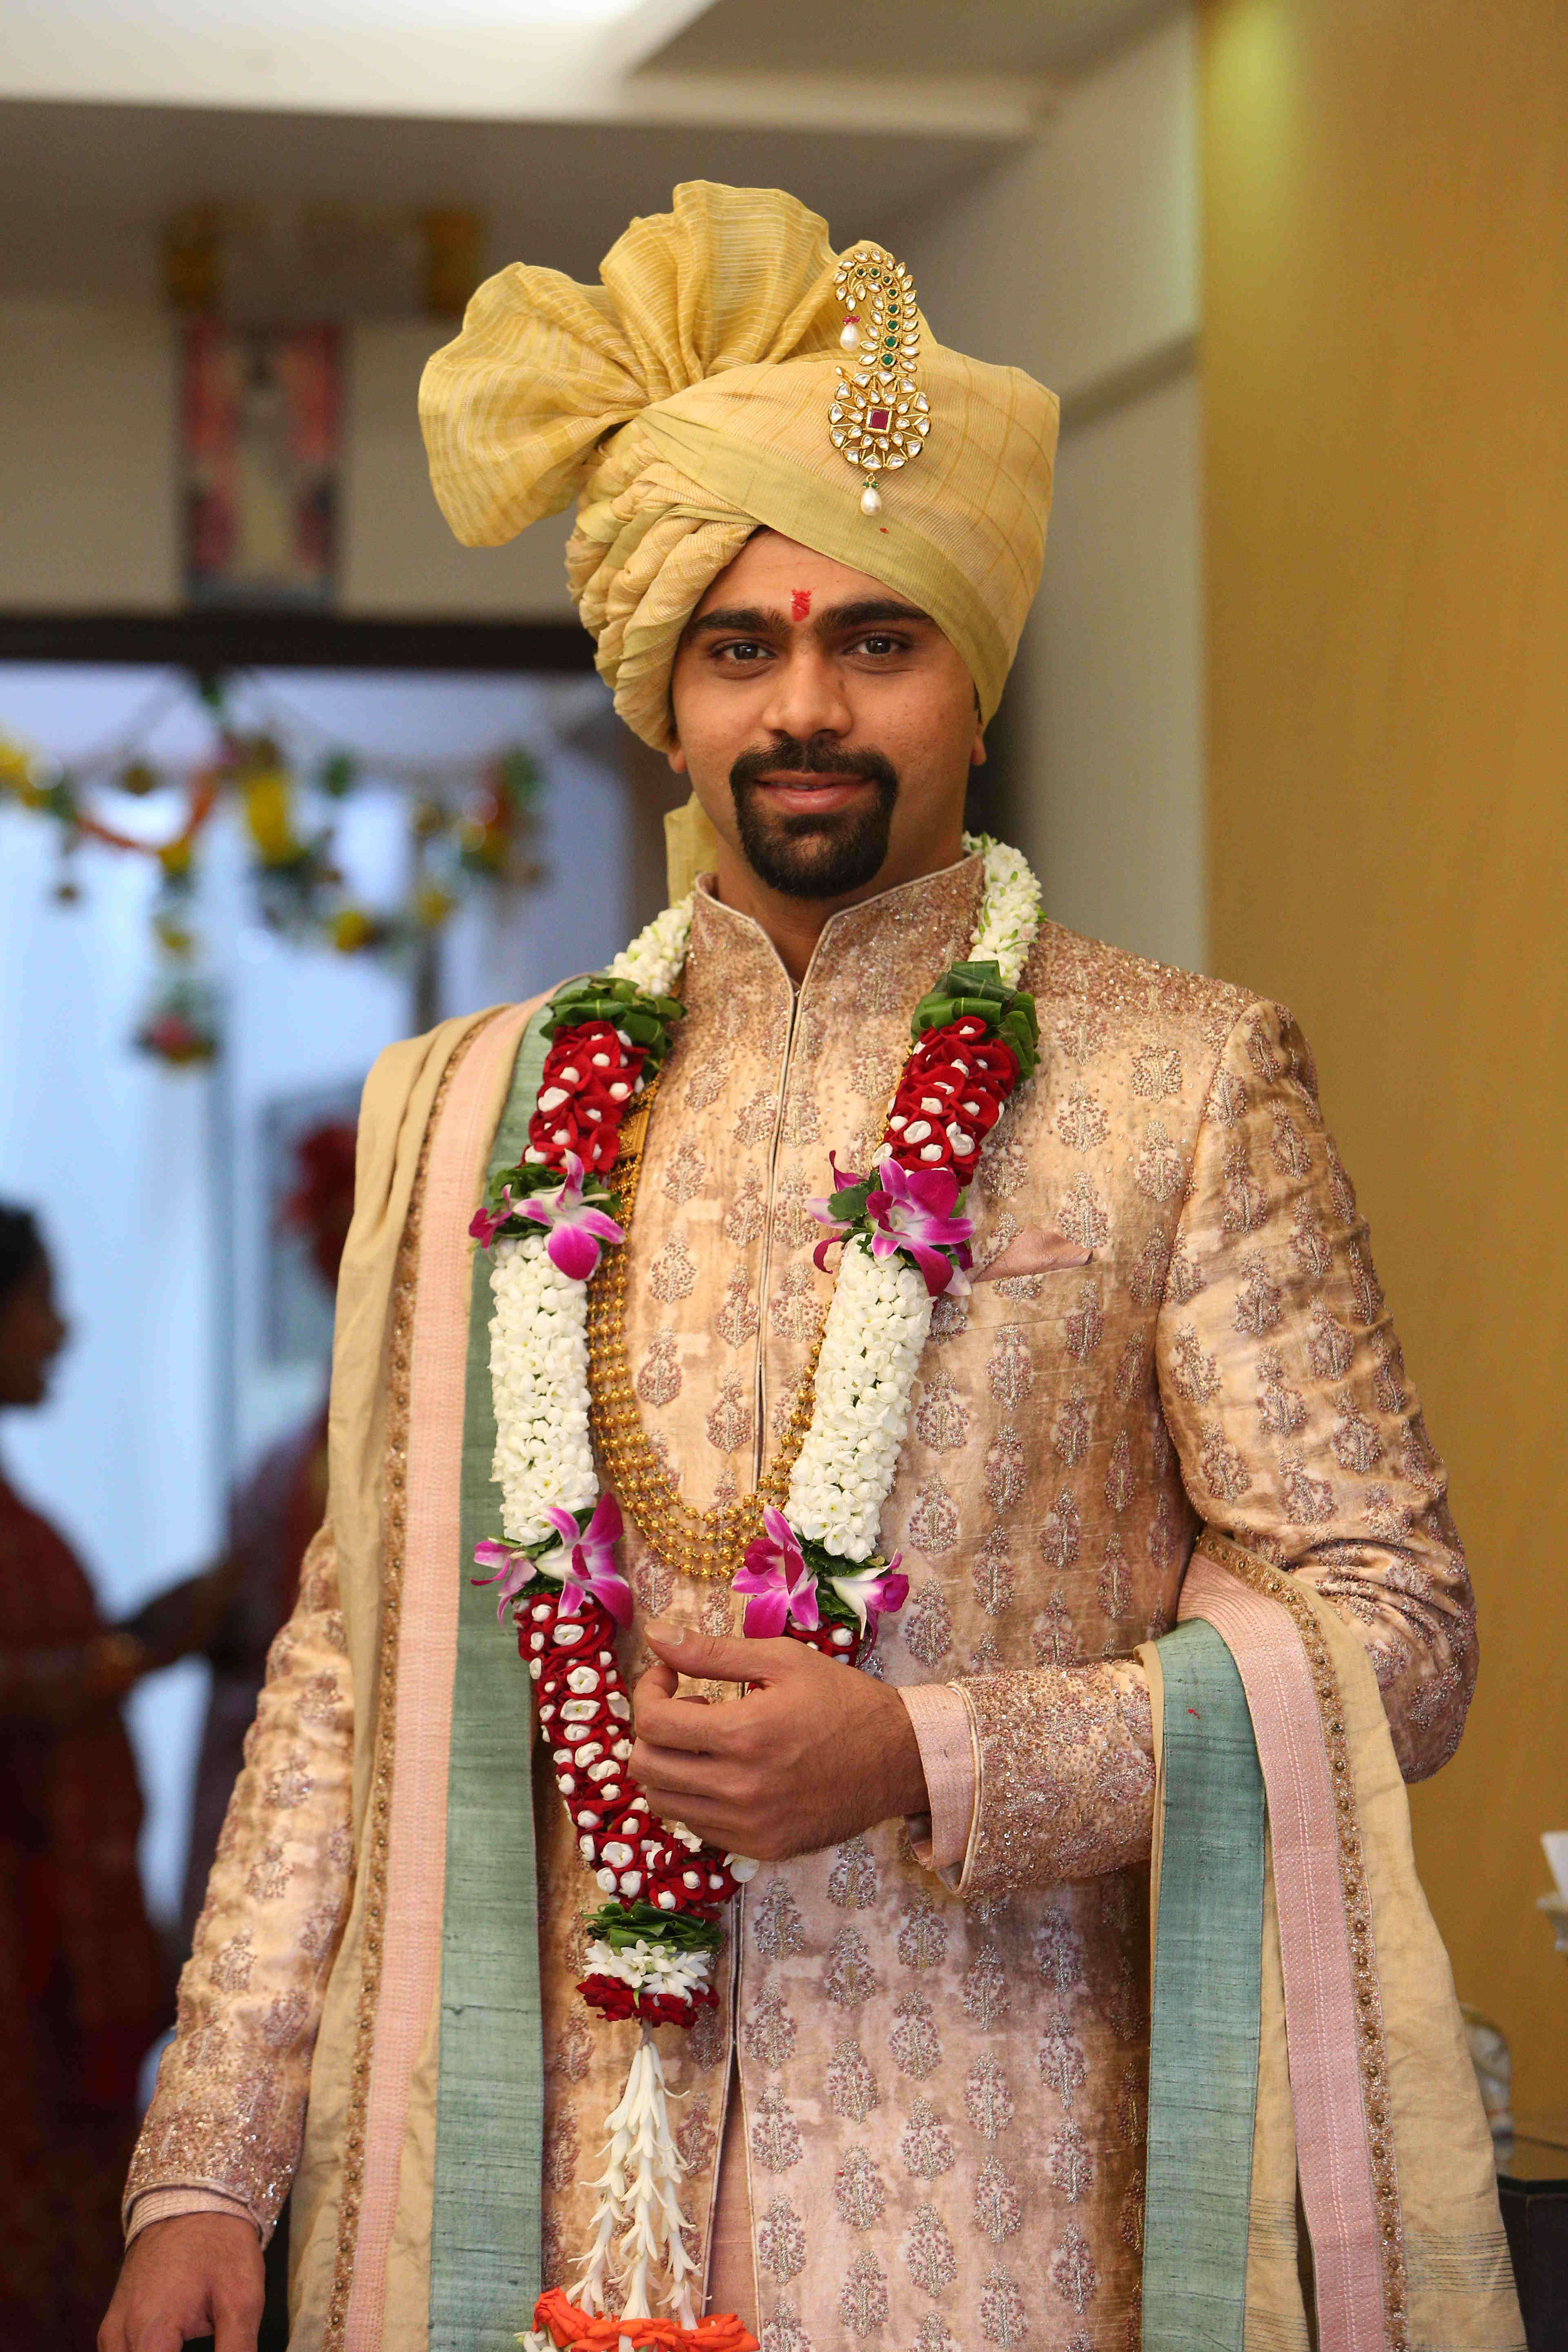 the dapper groom!:the lalit, royal caterers, just men just kidding, pakhi makeup artist, papa dont preach, shantanu and nikhil, anushree reddy